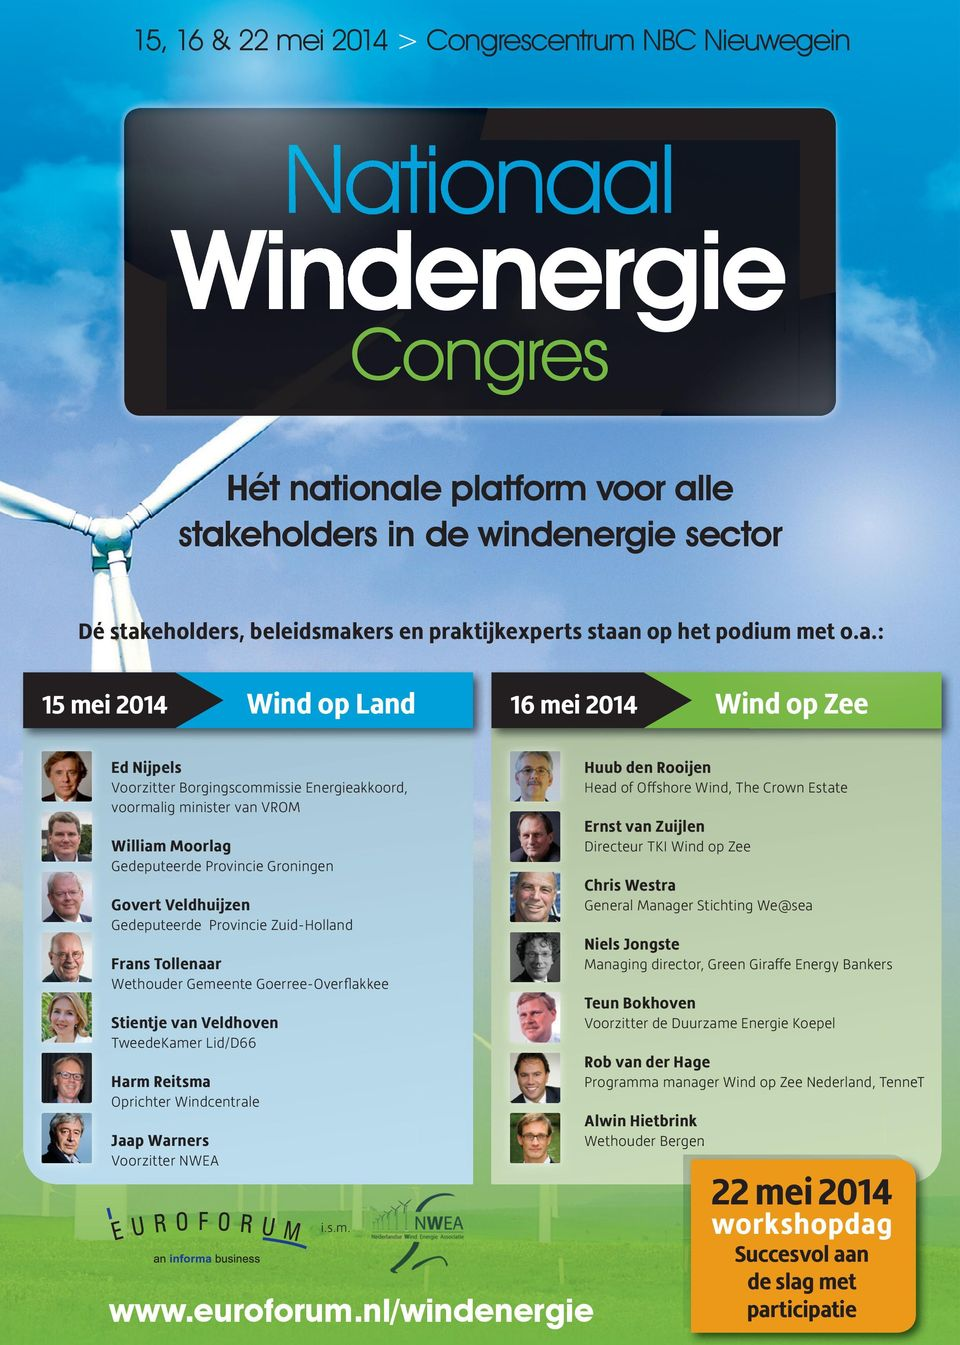 Head of Offshore Wind, The Crown Estate Ernst van Zuijlen William Moorlag Directeur TKI Wind op Zee Gedeputeerde Provincie Groningen Chris Westra Govert Veldhuijzen General Manager Stichting We@sea